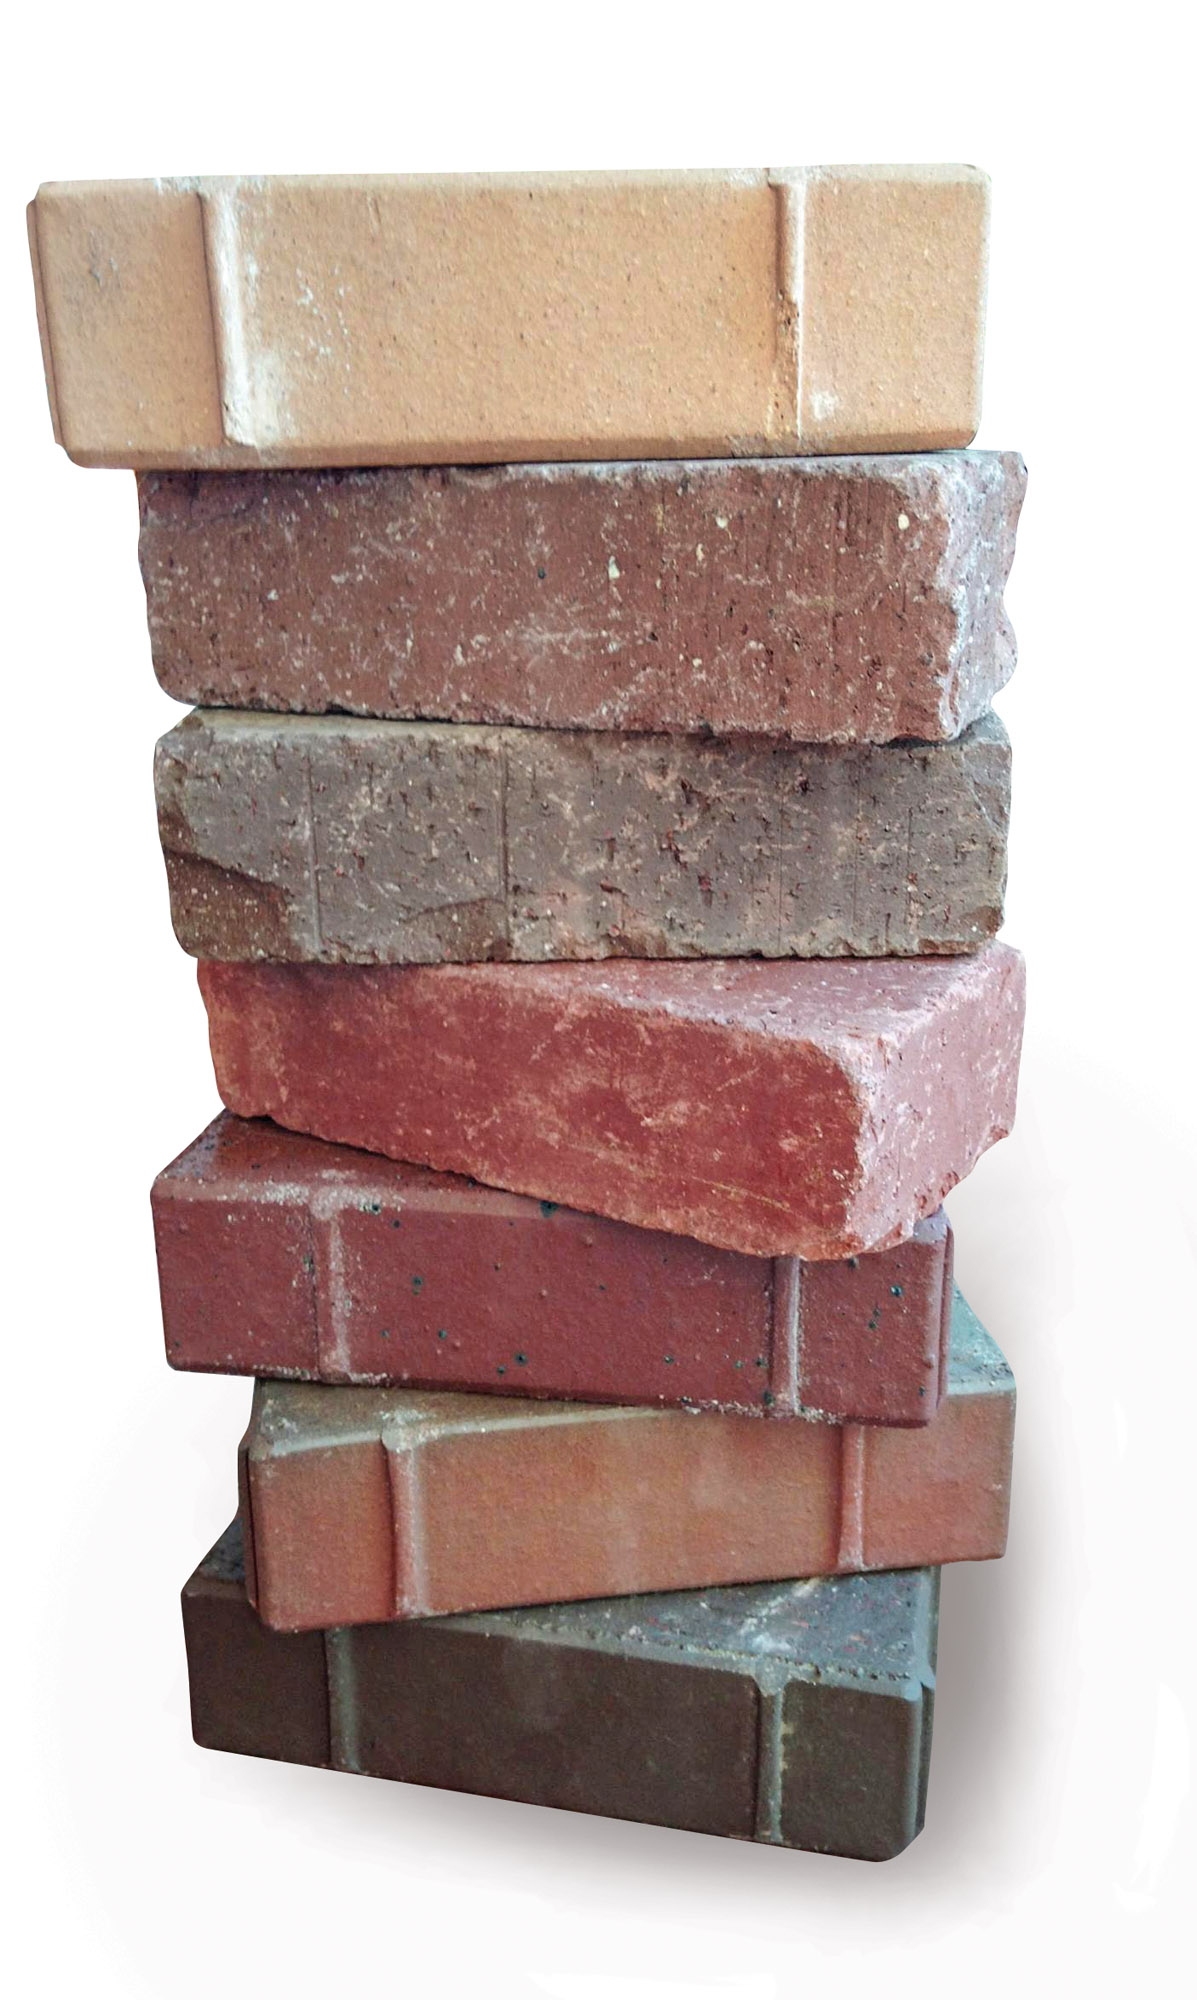 Paving bricks from Pine Hall Brick come in a wide variety of colors.